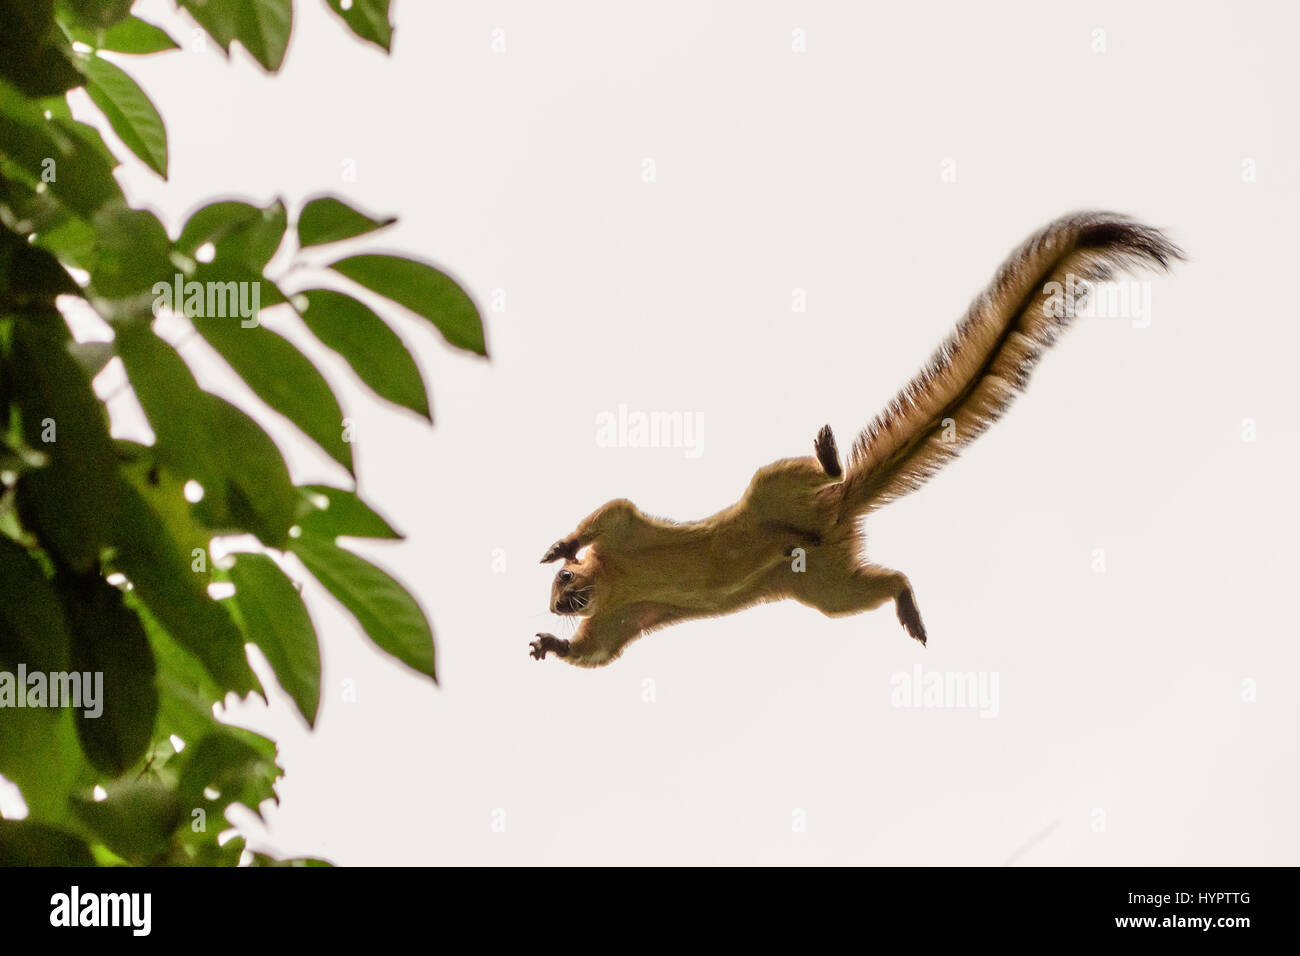 Squirrel in mid air leaping from one tree to another - Stock Image